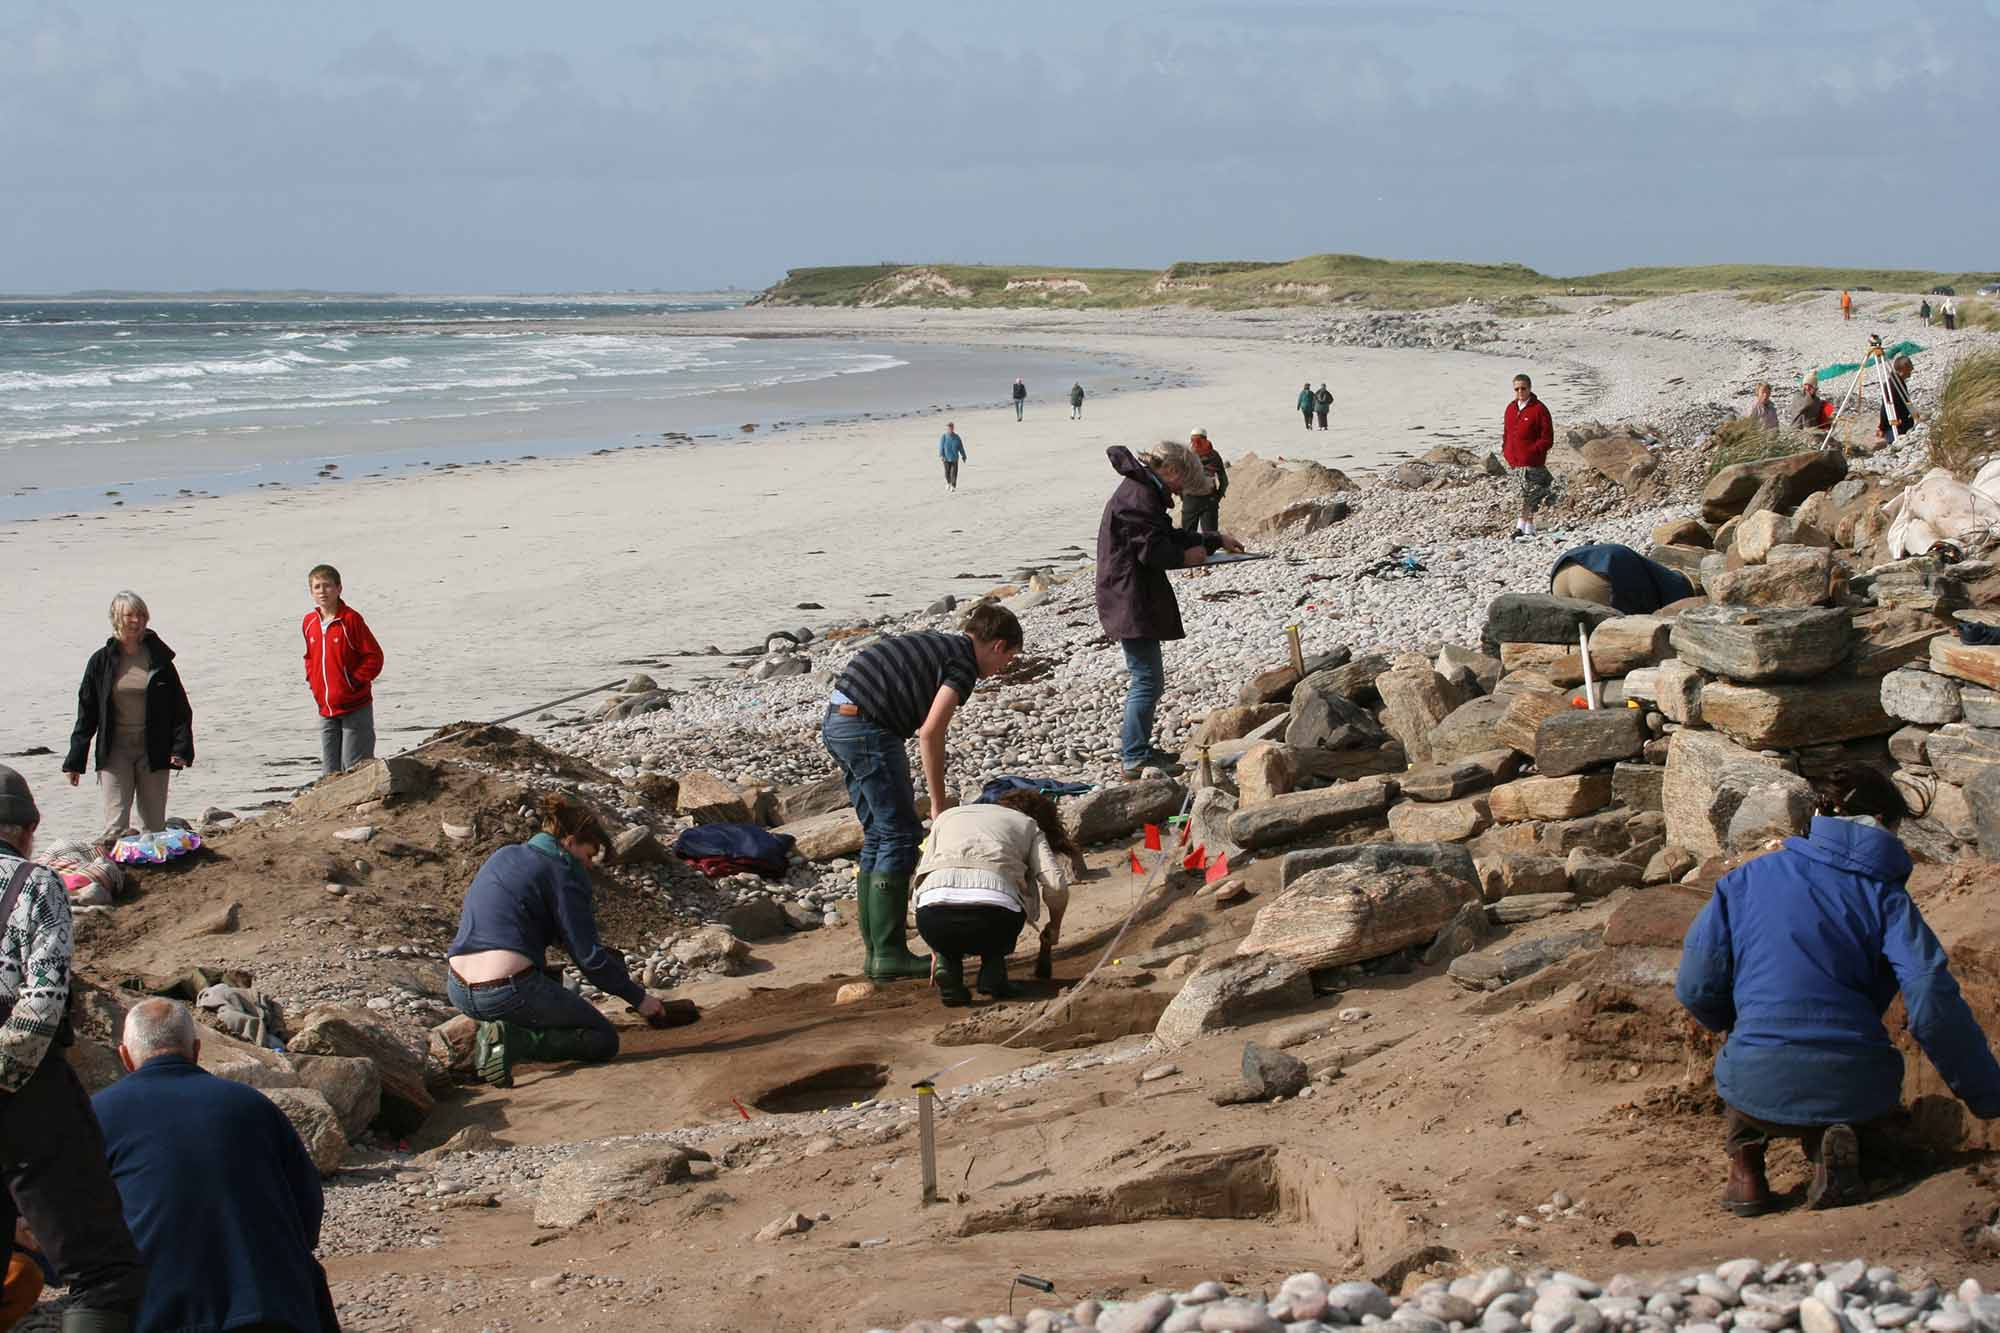 Archaeologists work at an excavation site on beach